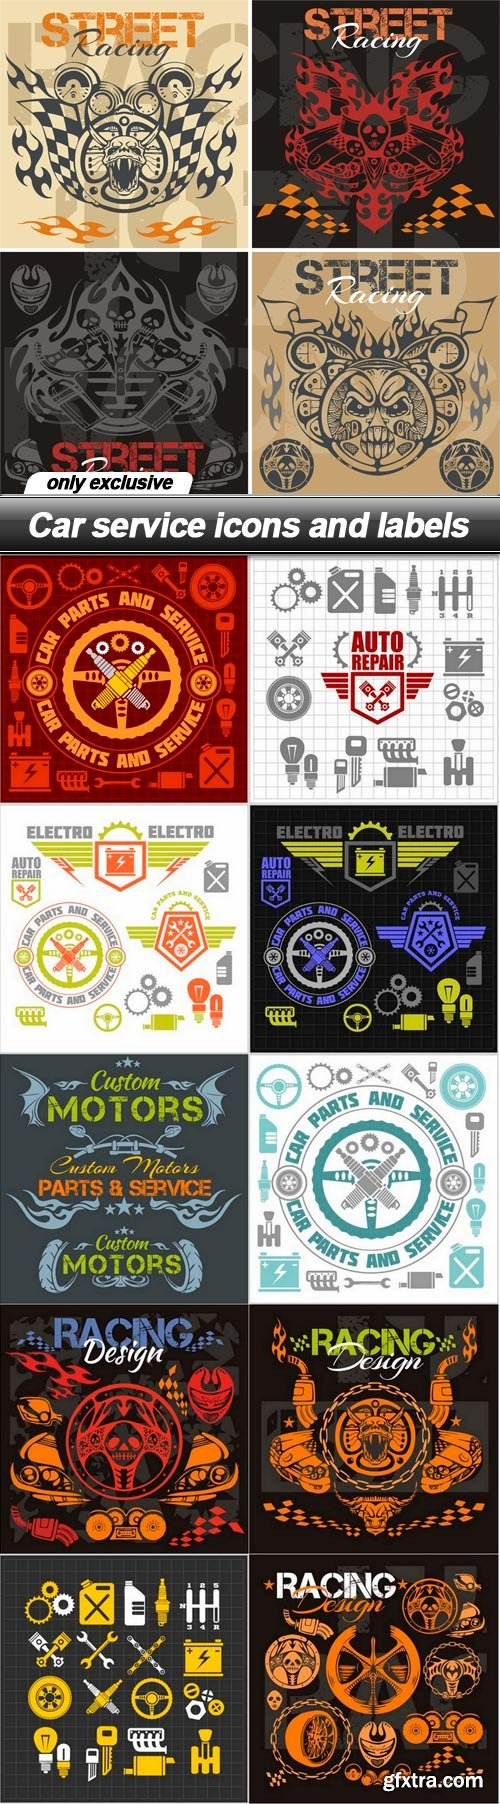 Car service icons and labels - 11 EPS